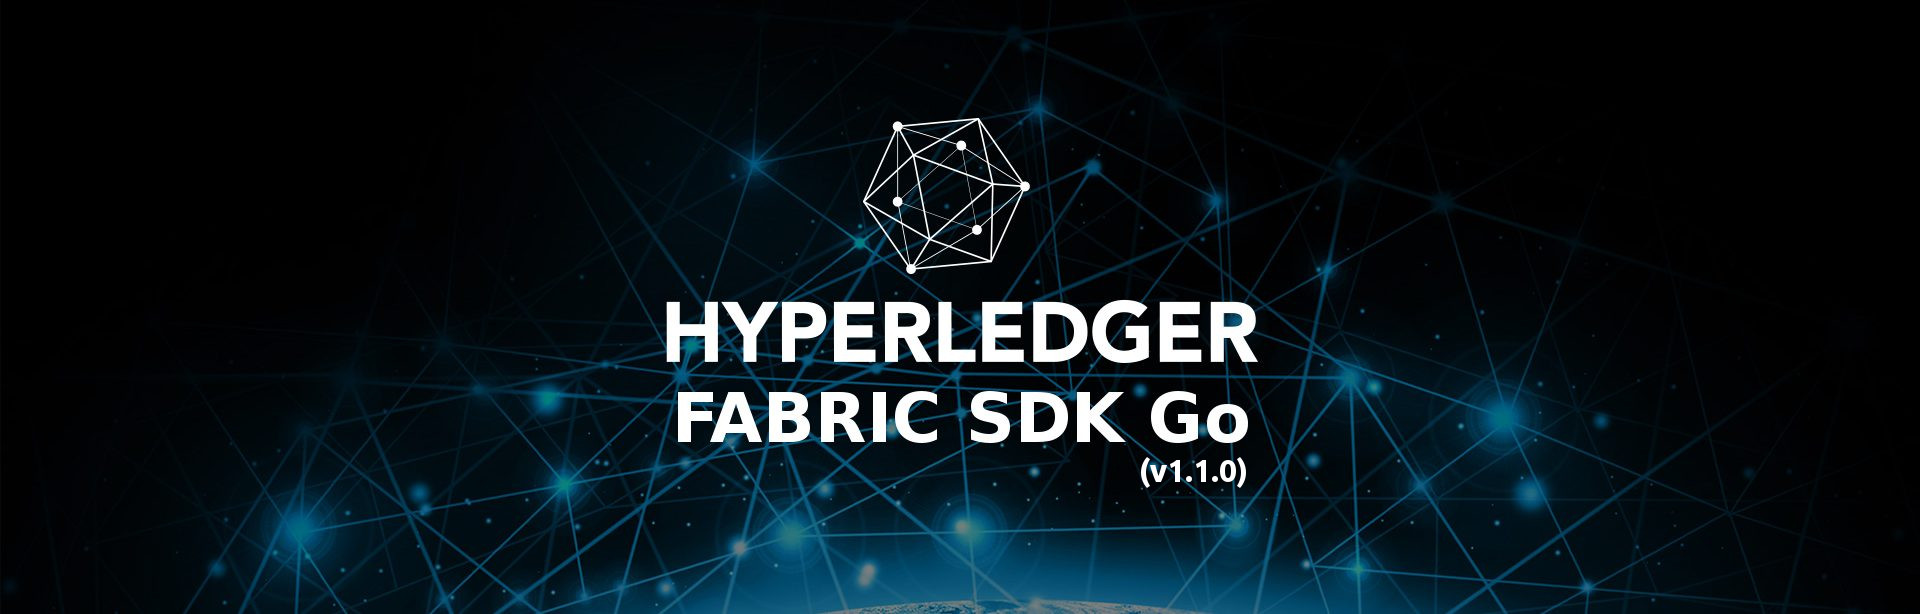 Tutorial Hyperledger Fabric SDK Go: How to build your first app? (v1.1.0)